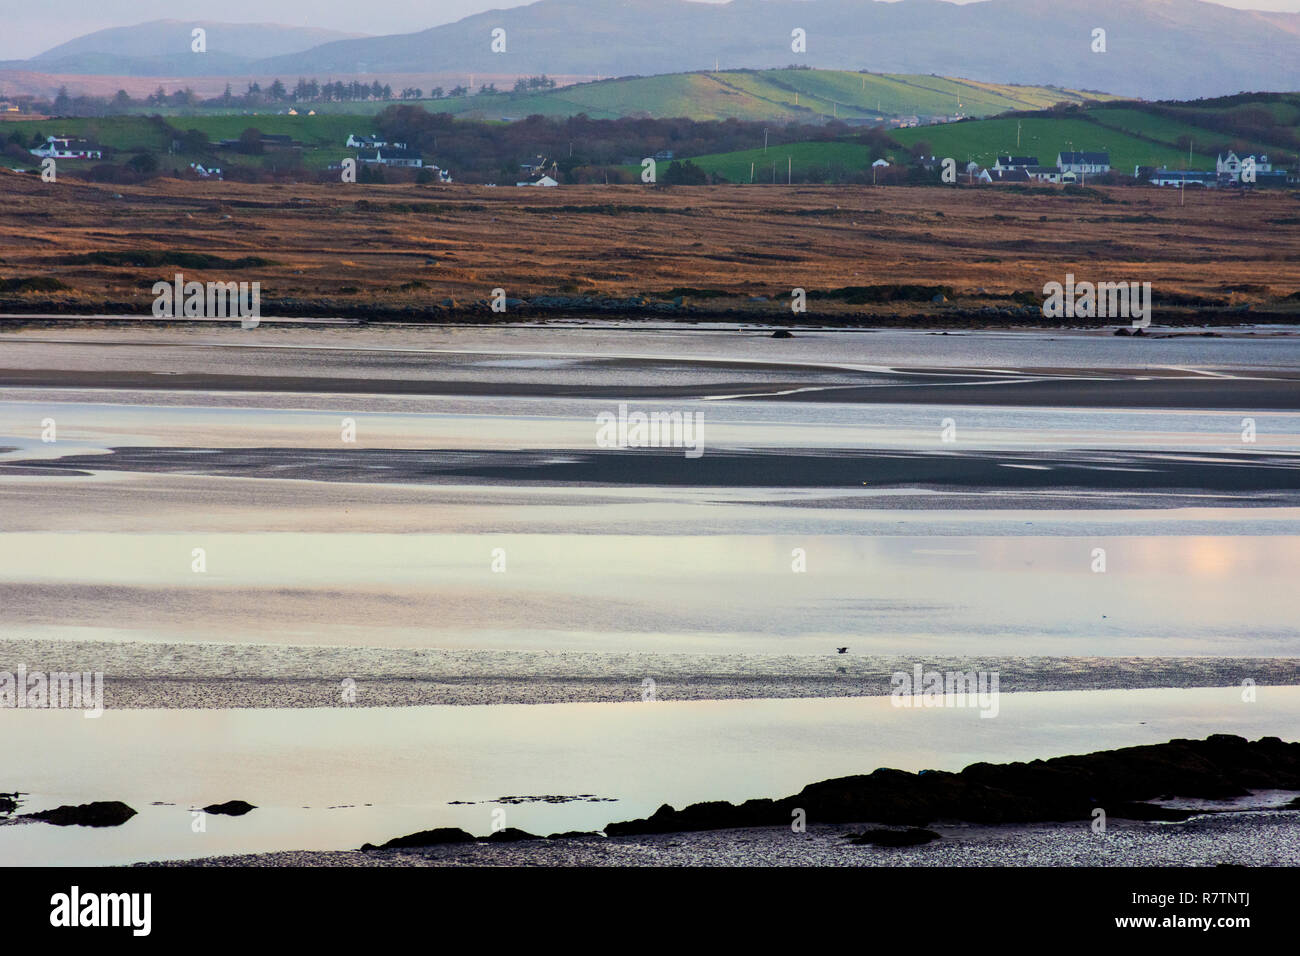 Loughros More Bay, Ardara, County Donegal, Ireland. Proposed site of controversial oyster farm. - Stock Image